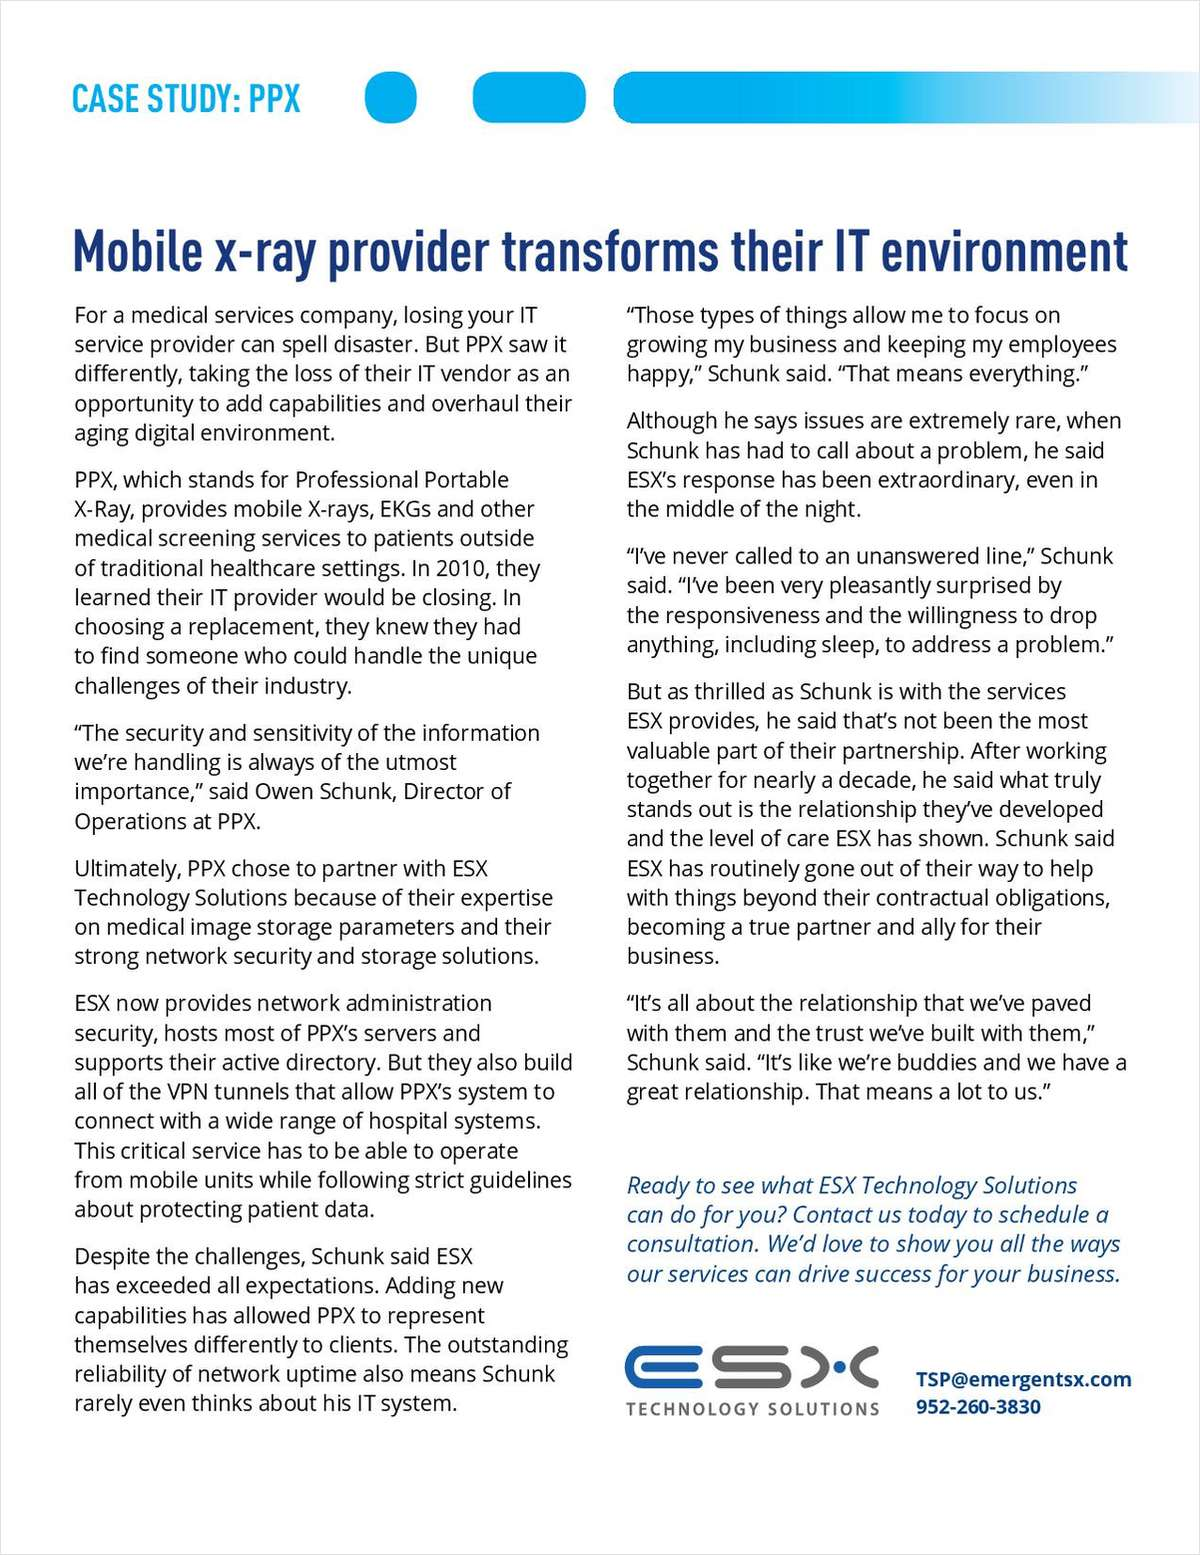 Mobile X-Ray Provider Transforms Their IT Environment